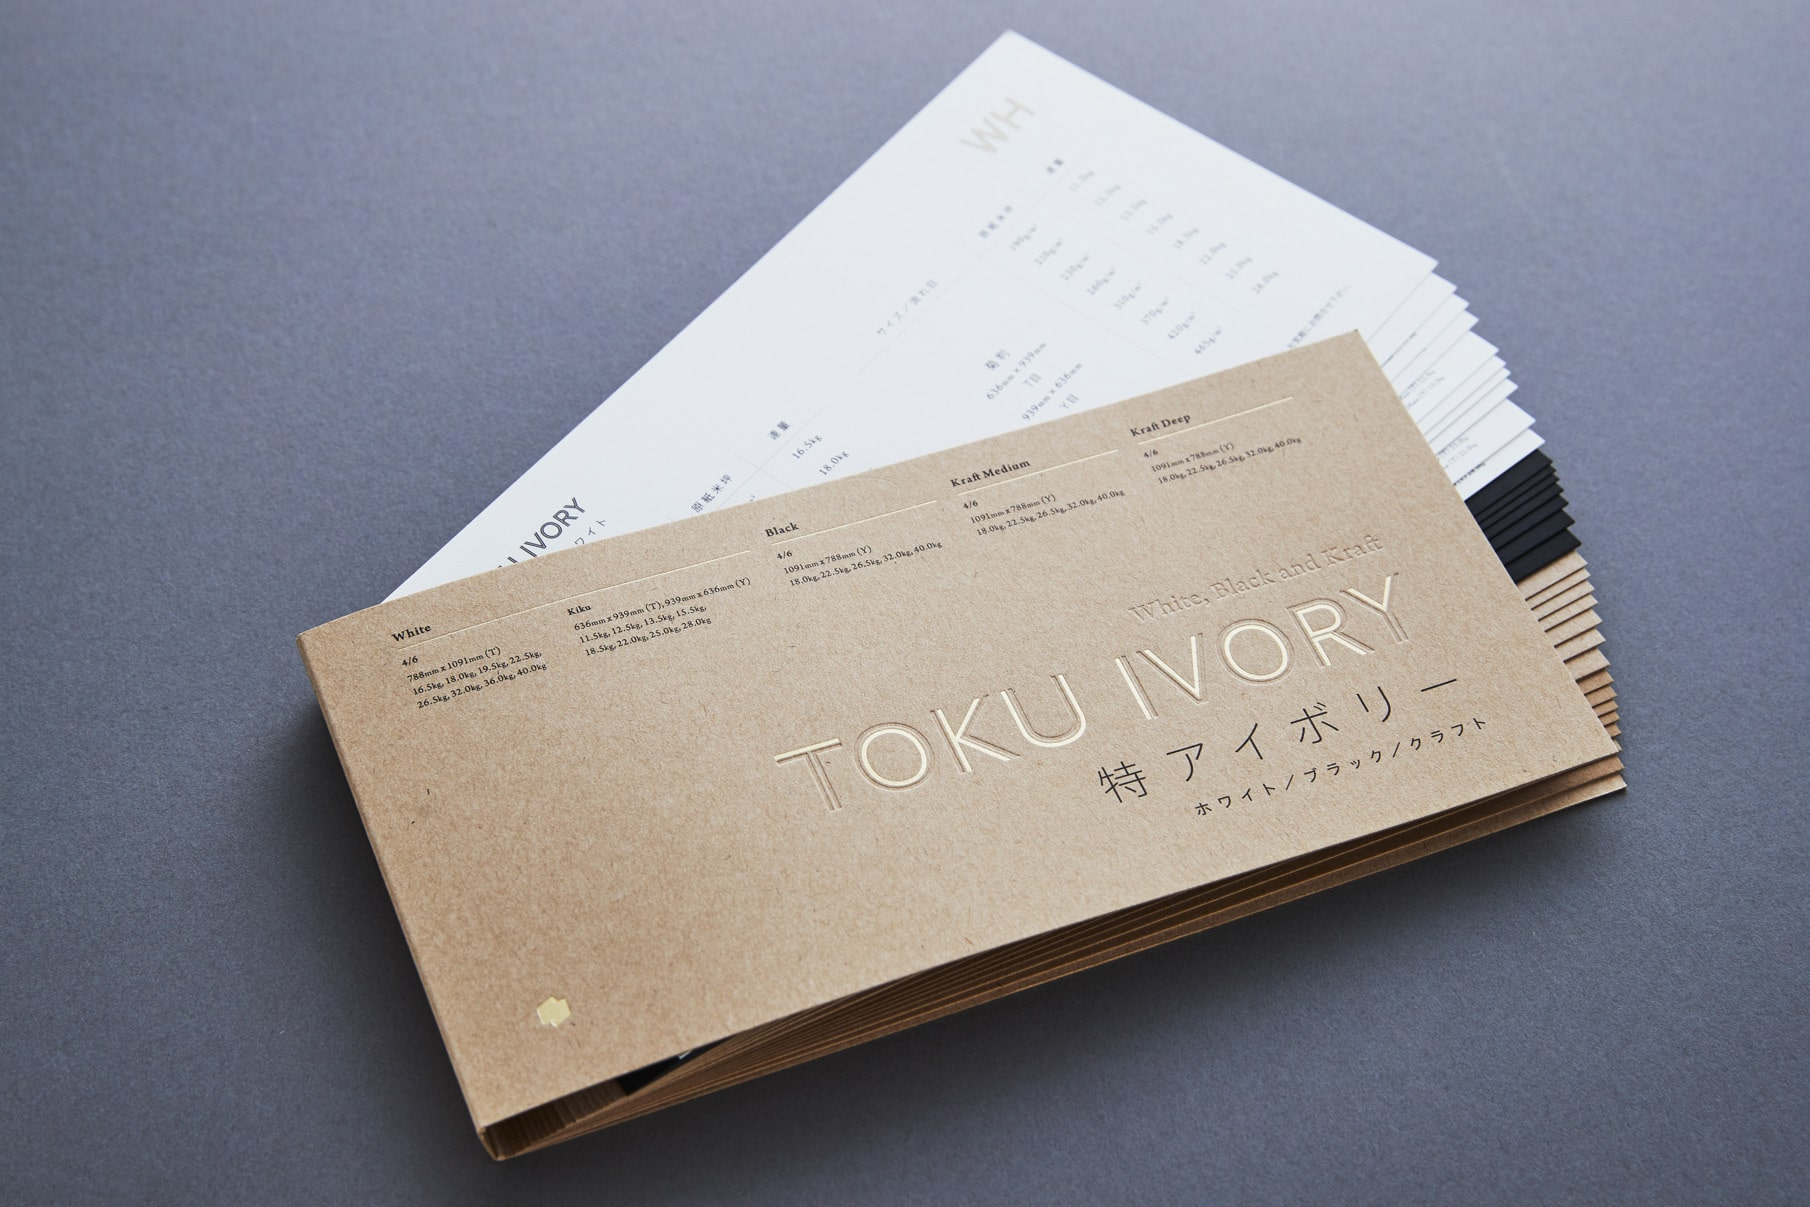 Toku Ivory - Promotion Book 2